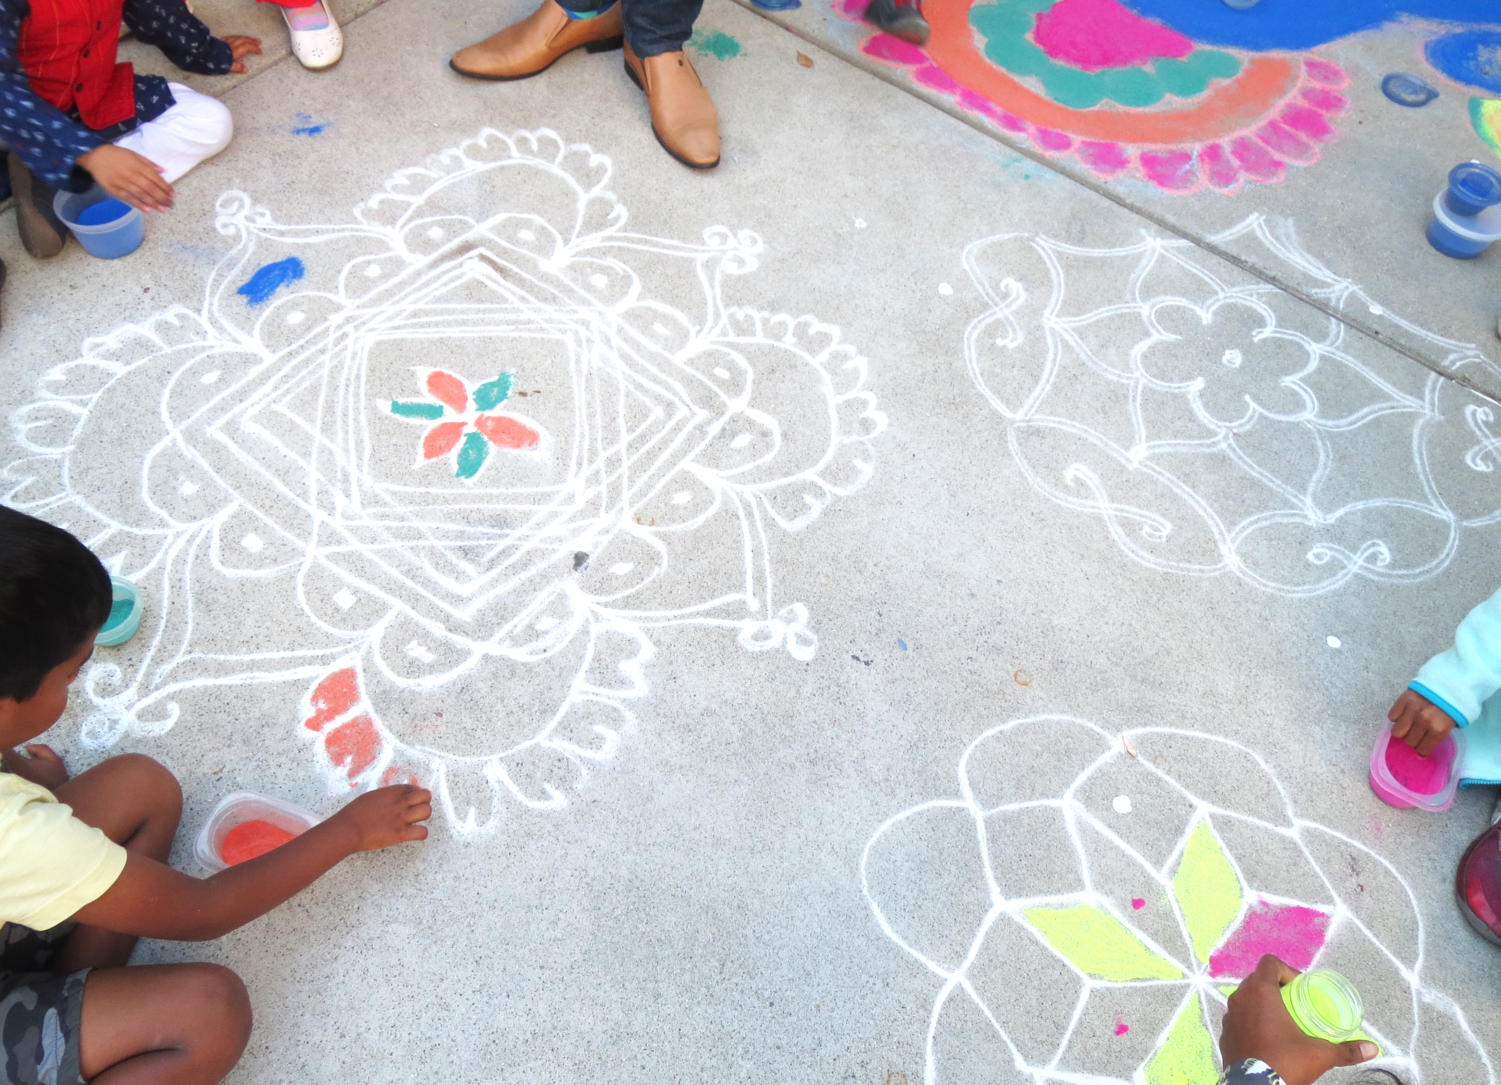 Children fill in rangoli designs with colored rice flour and sand as adults stand around eating samosas, drinking chai, and socializing.